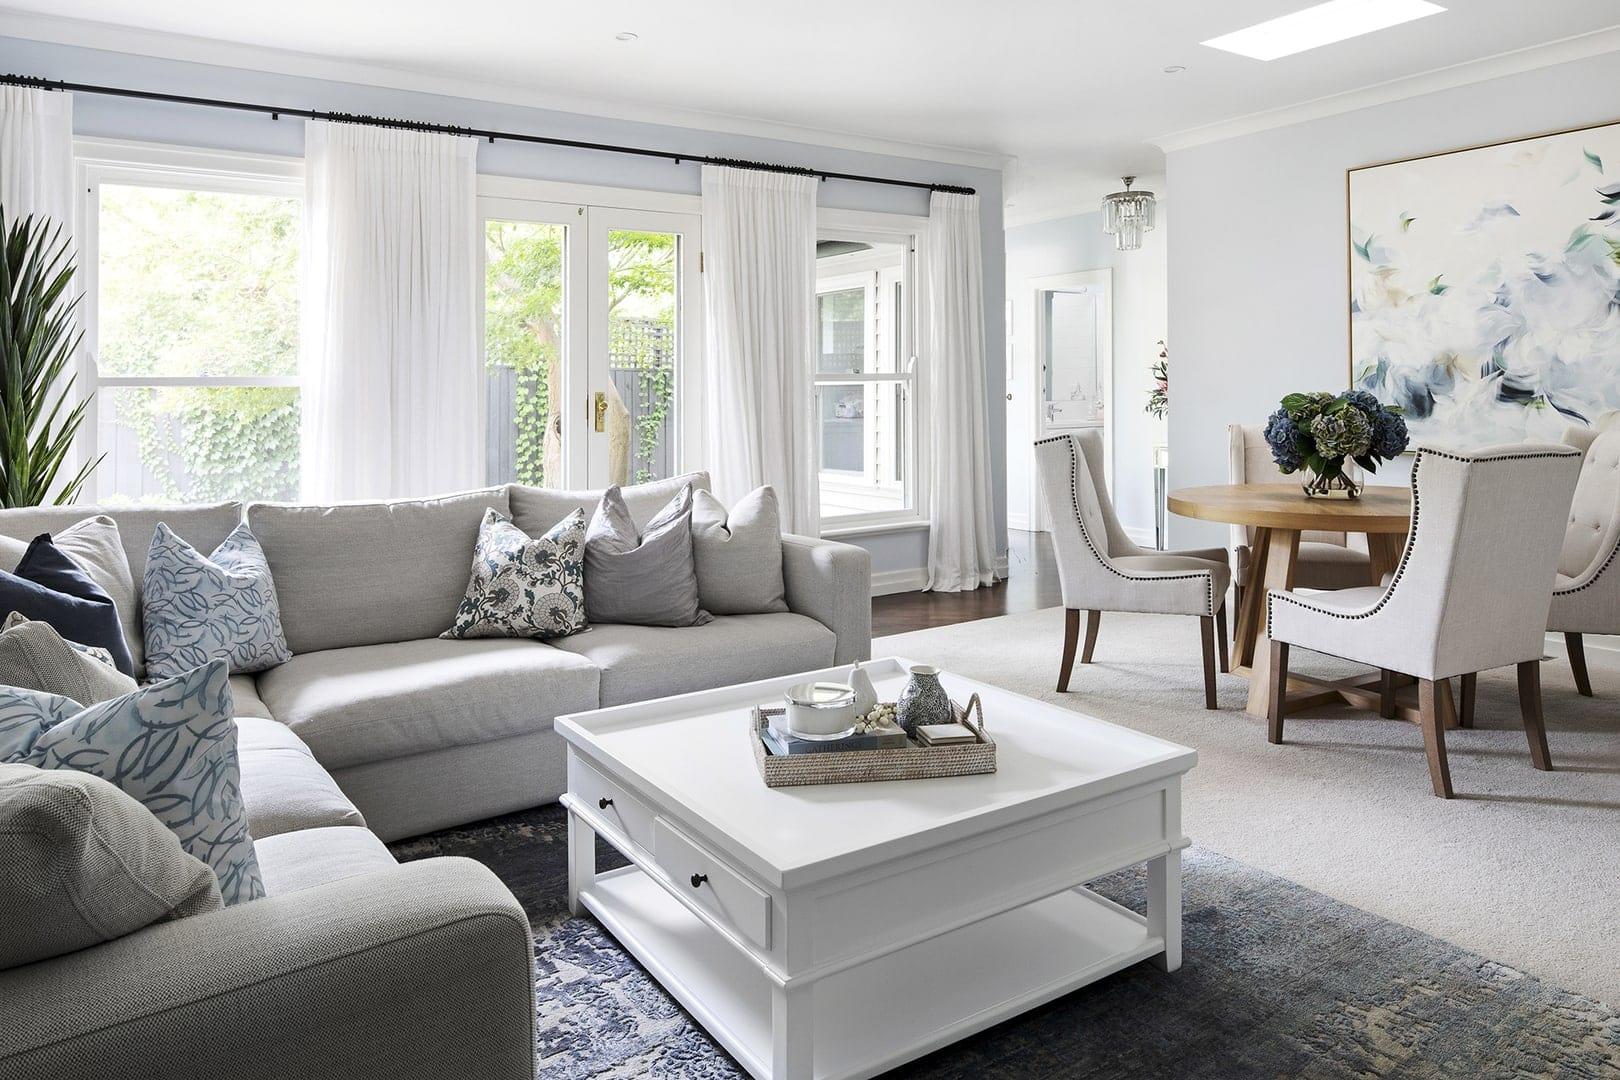 classic hamptons interior design scheme hamptons white square coffee table in light blue living room